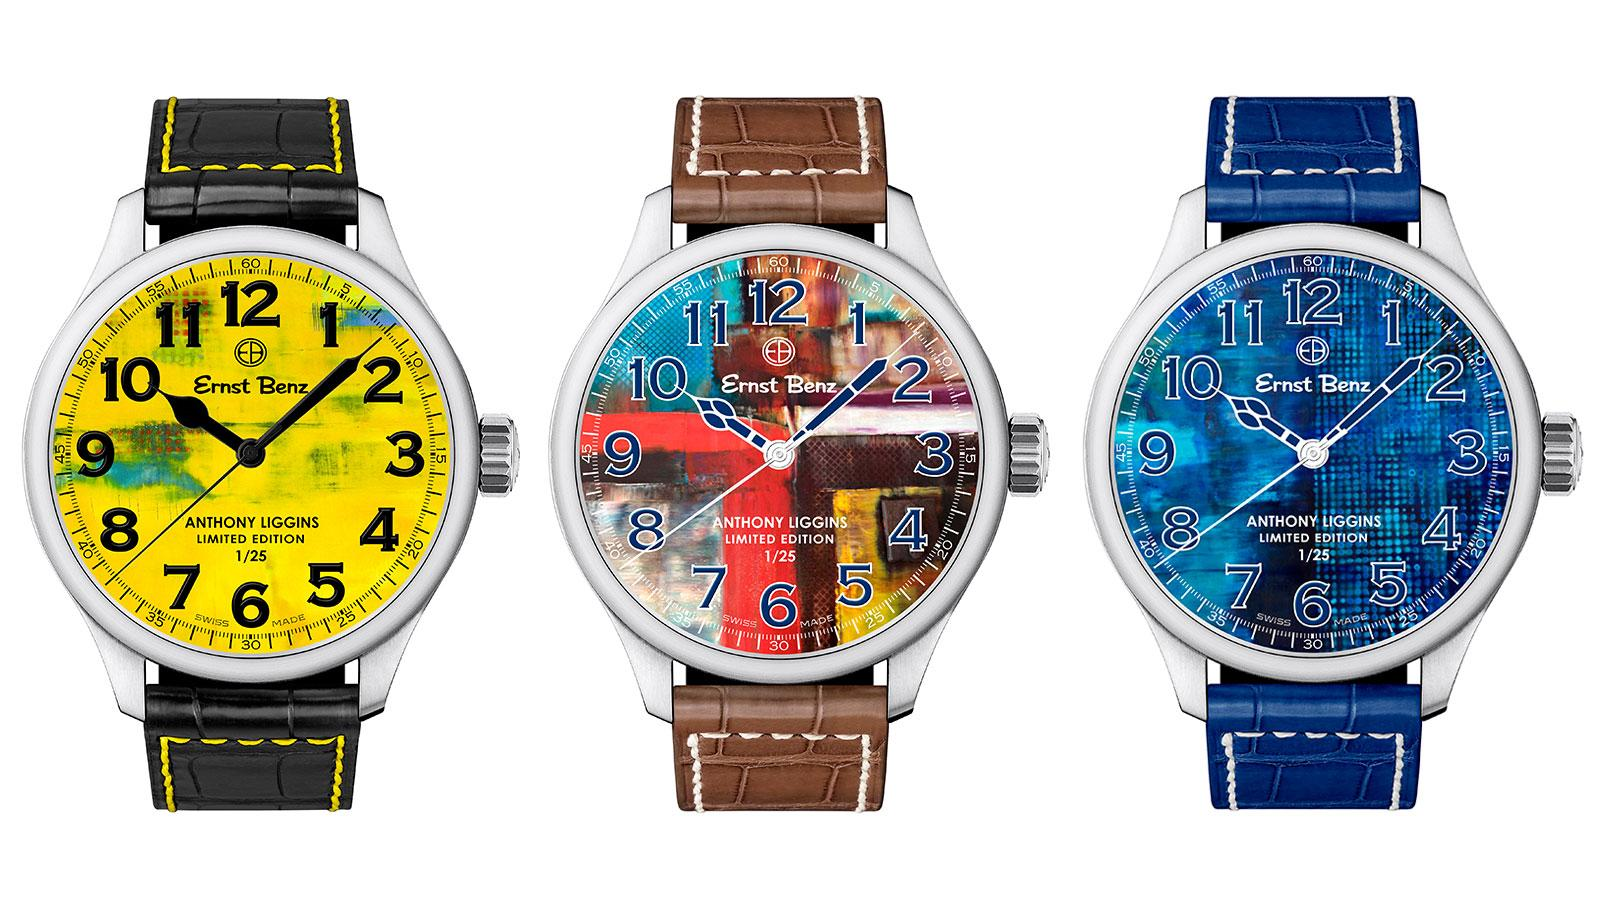 The new Ernst Benz by Anthony Liggins collection is a series of three, limited-edition, brushed stainless-steel ChronoSport models with vibrant, numbered dials that depict Liggins' paintings.